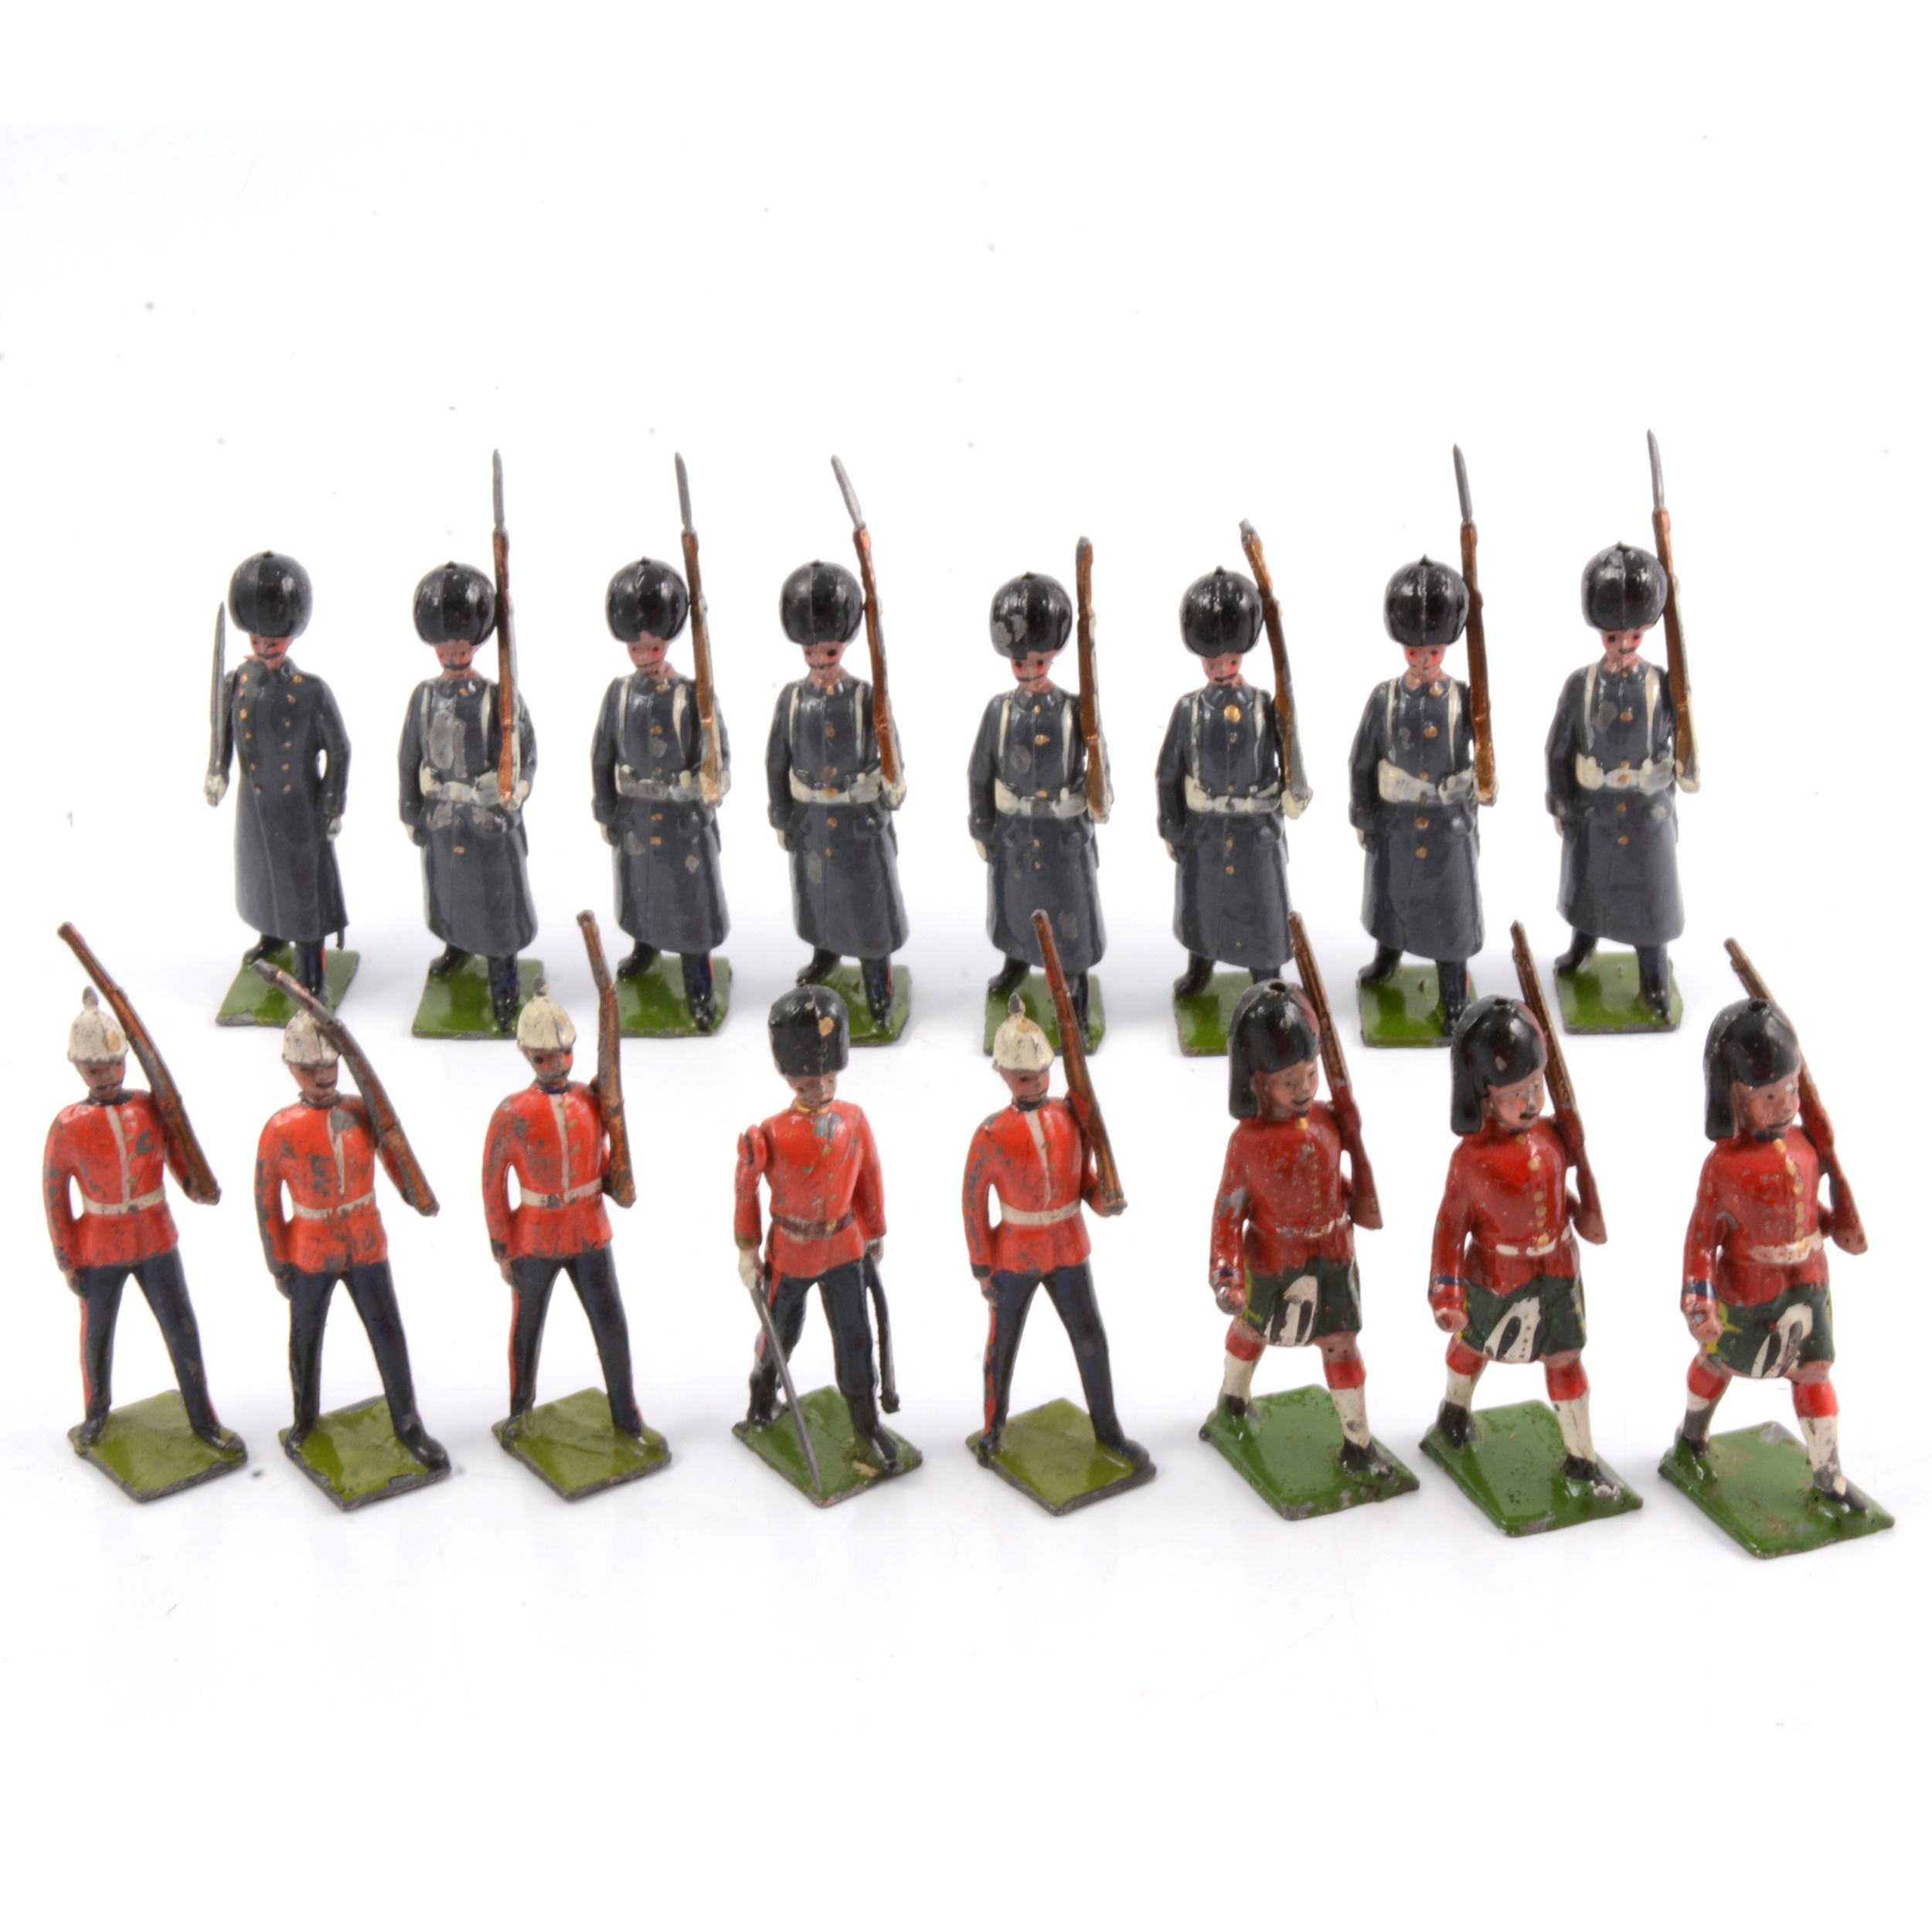 Britains lead-painted figures, including eight Grenadier Guards in greatcoats